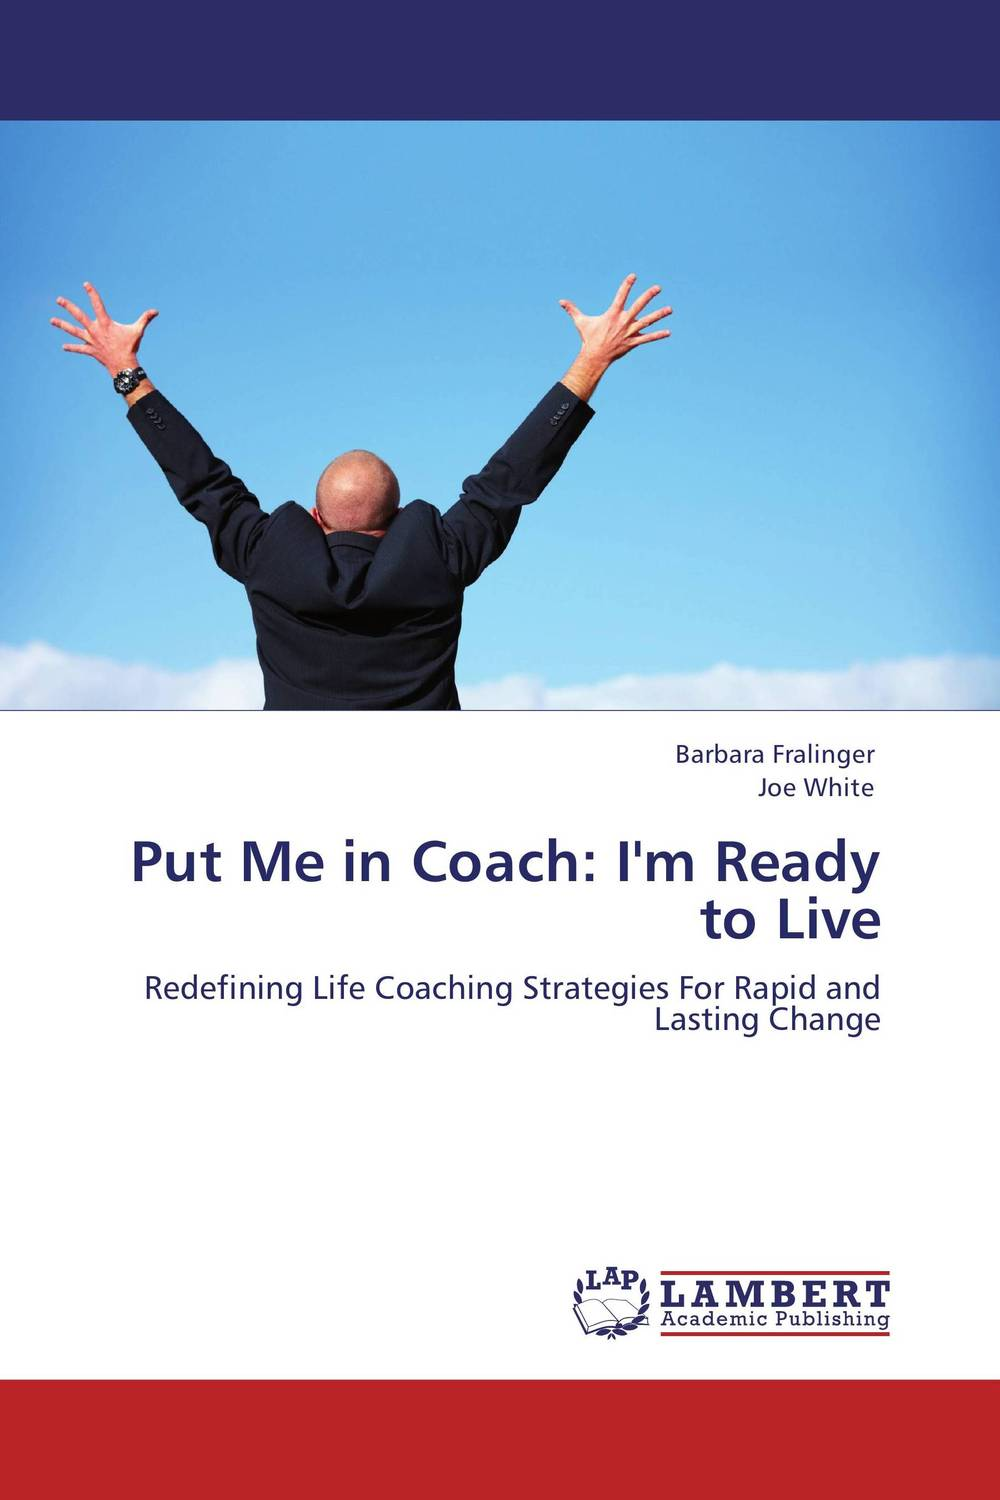 Put Me in Coach: I'm Ready to Live neurobiology of addictions